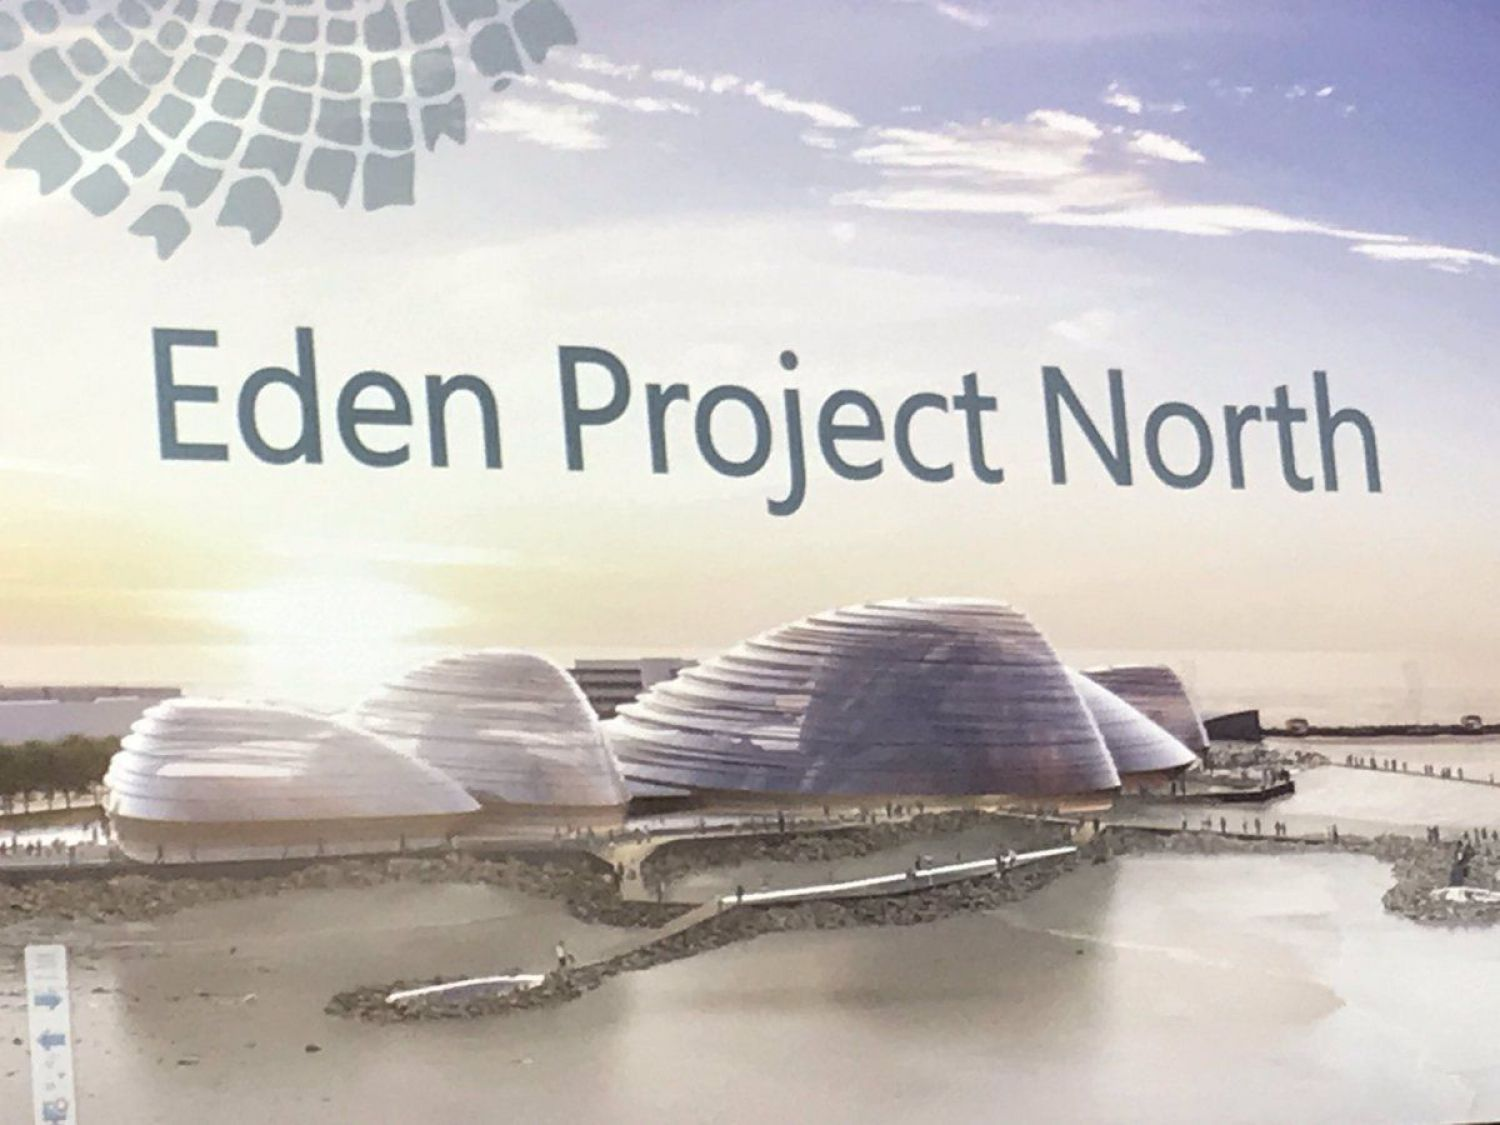 Eden Project North - Monthly Community Conversations